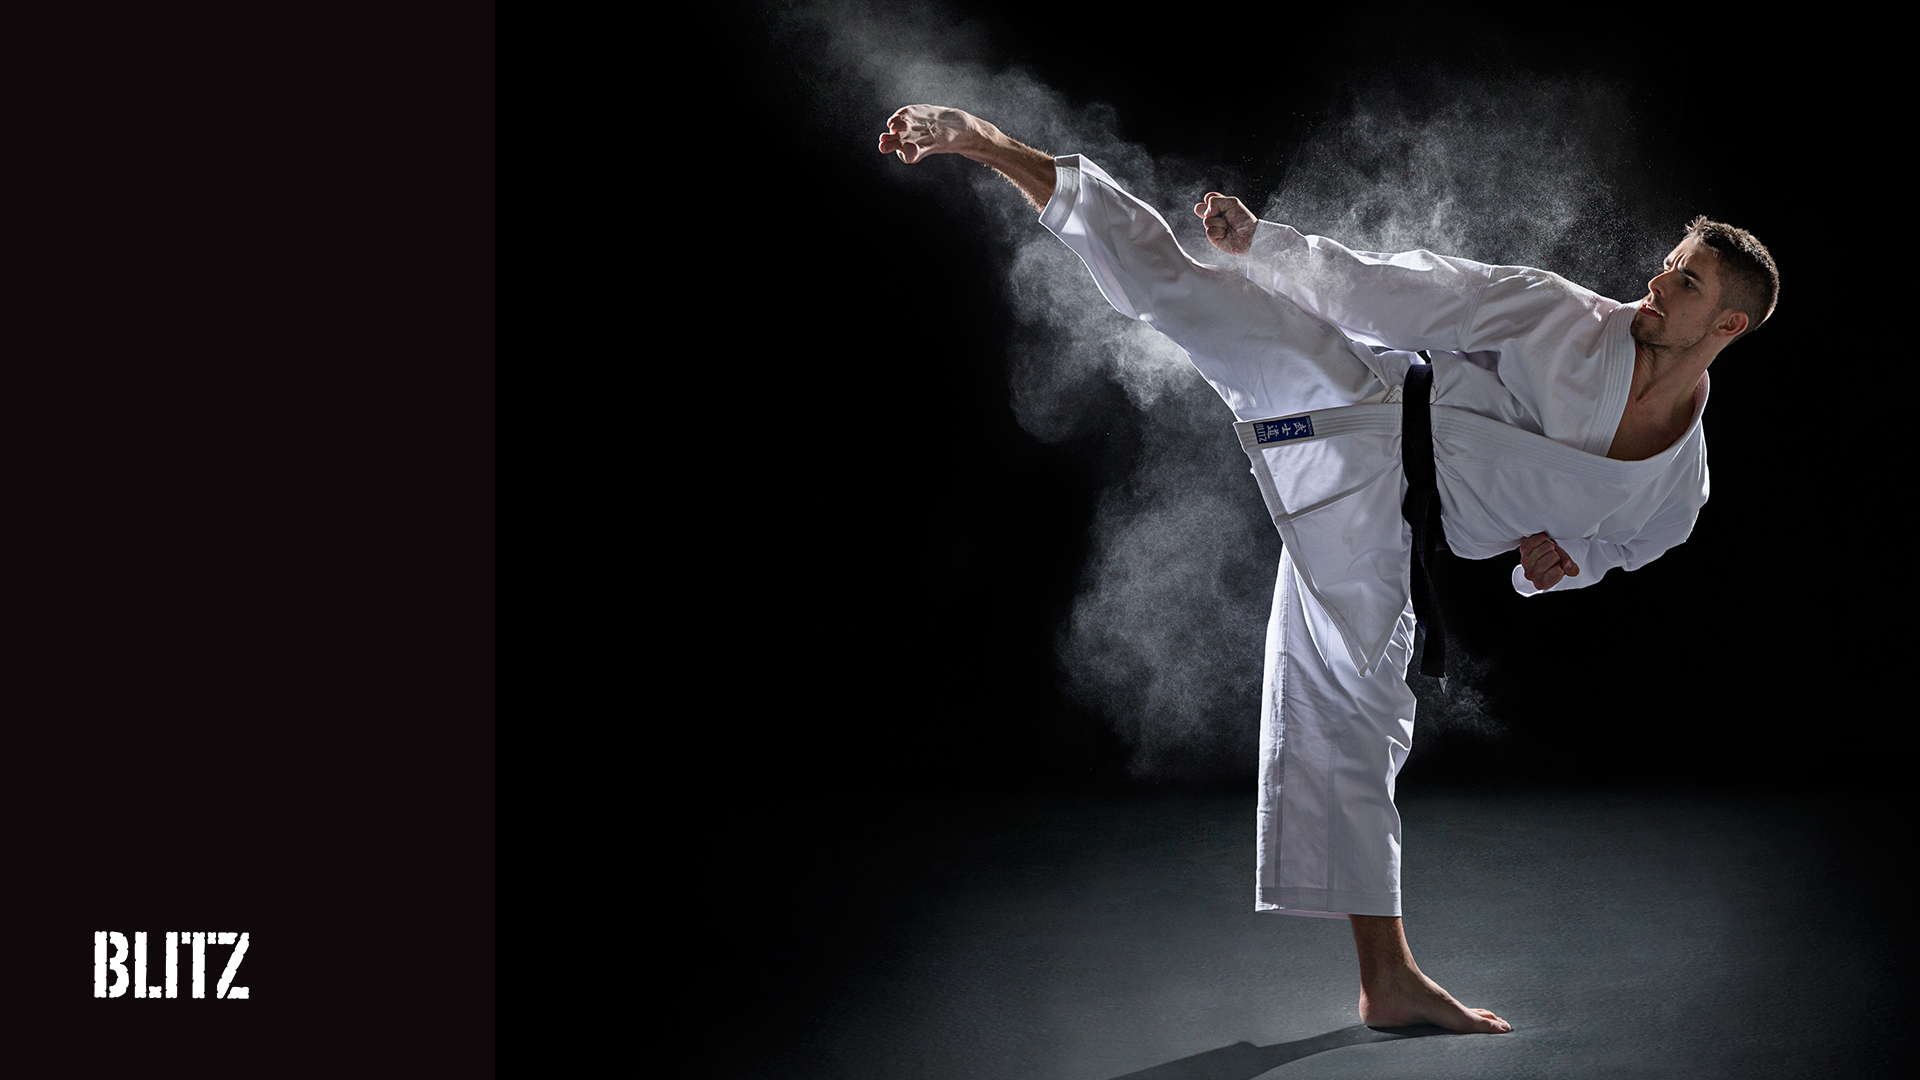 Free Download Hd Martial Arts Wallpapers 1920x1080 For Your Desktop Mobile Tablet Explore 76 Mixed Martial Arts Wallpaper Martial Arts Screensavers And Wallpapers Martial Arts Wallpapers Free Download